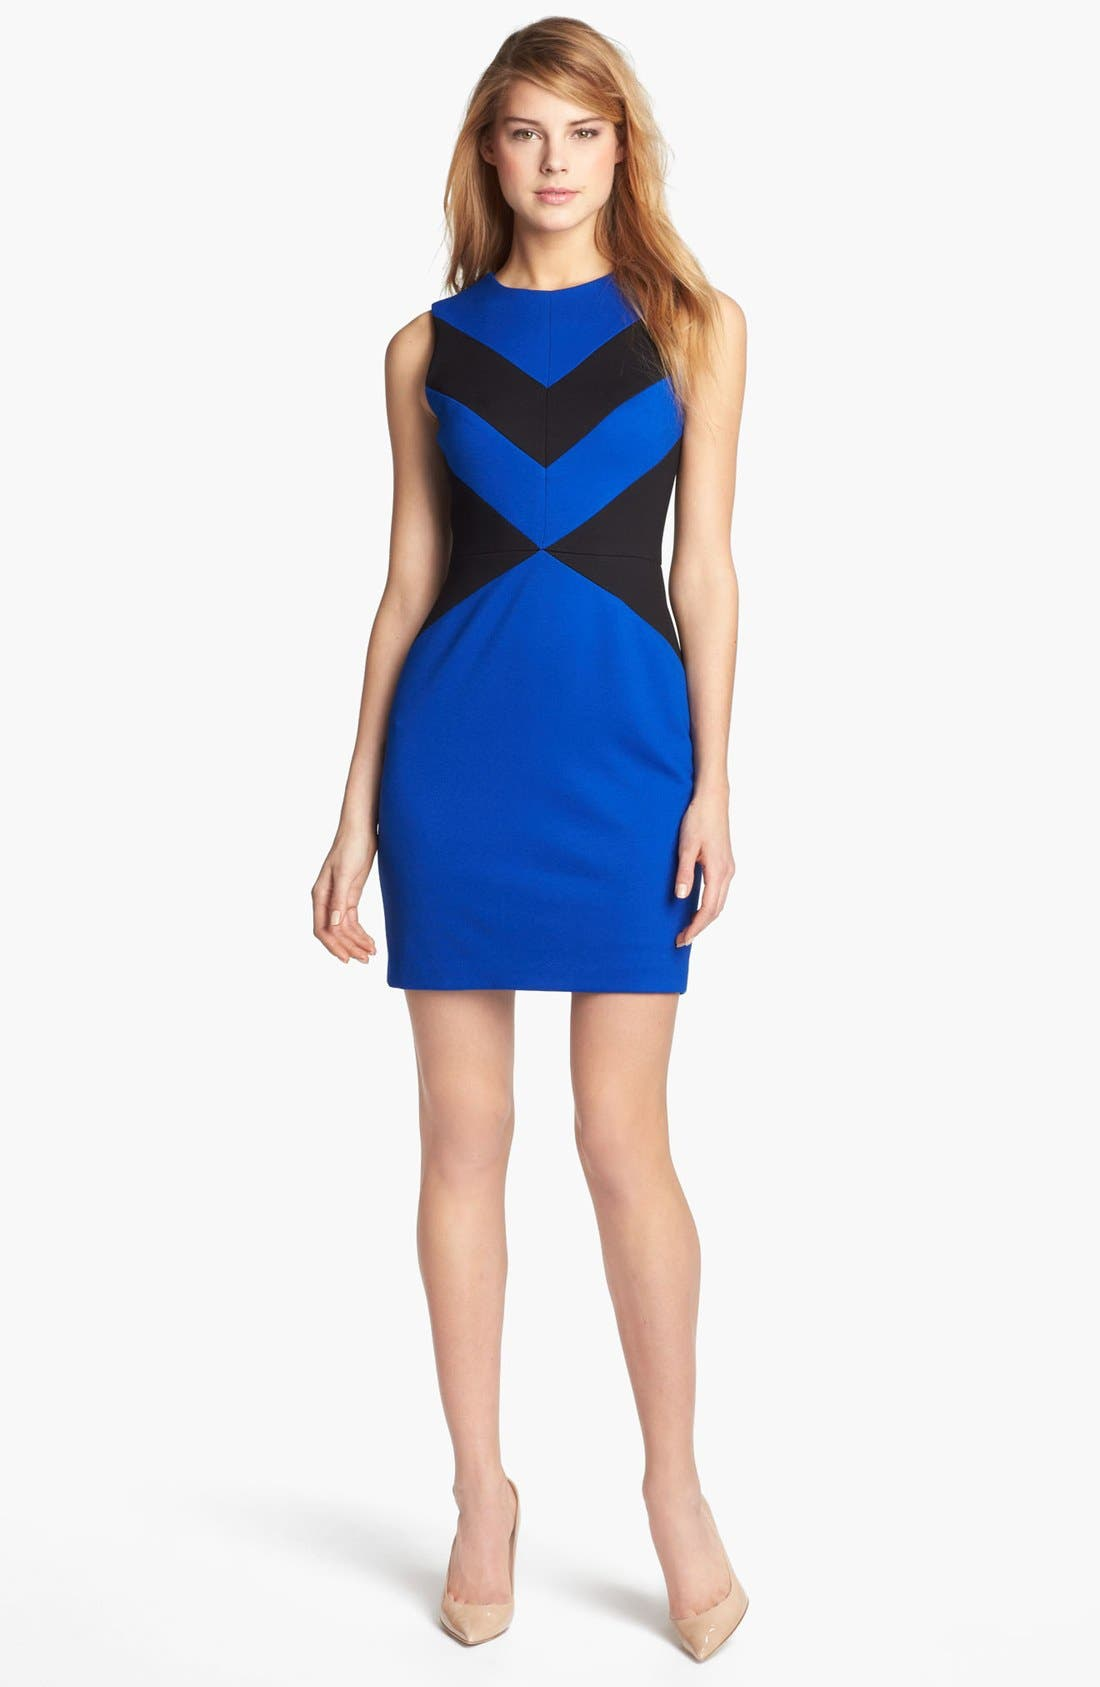 Alternate Image 1 Selected - Cynthia Steffe 'Elizabeth' Sleeveless Colorblock Sheath Dress